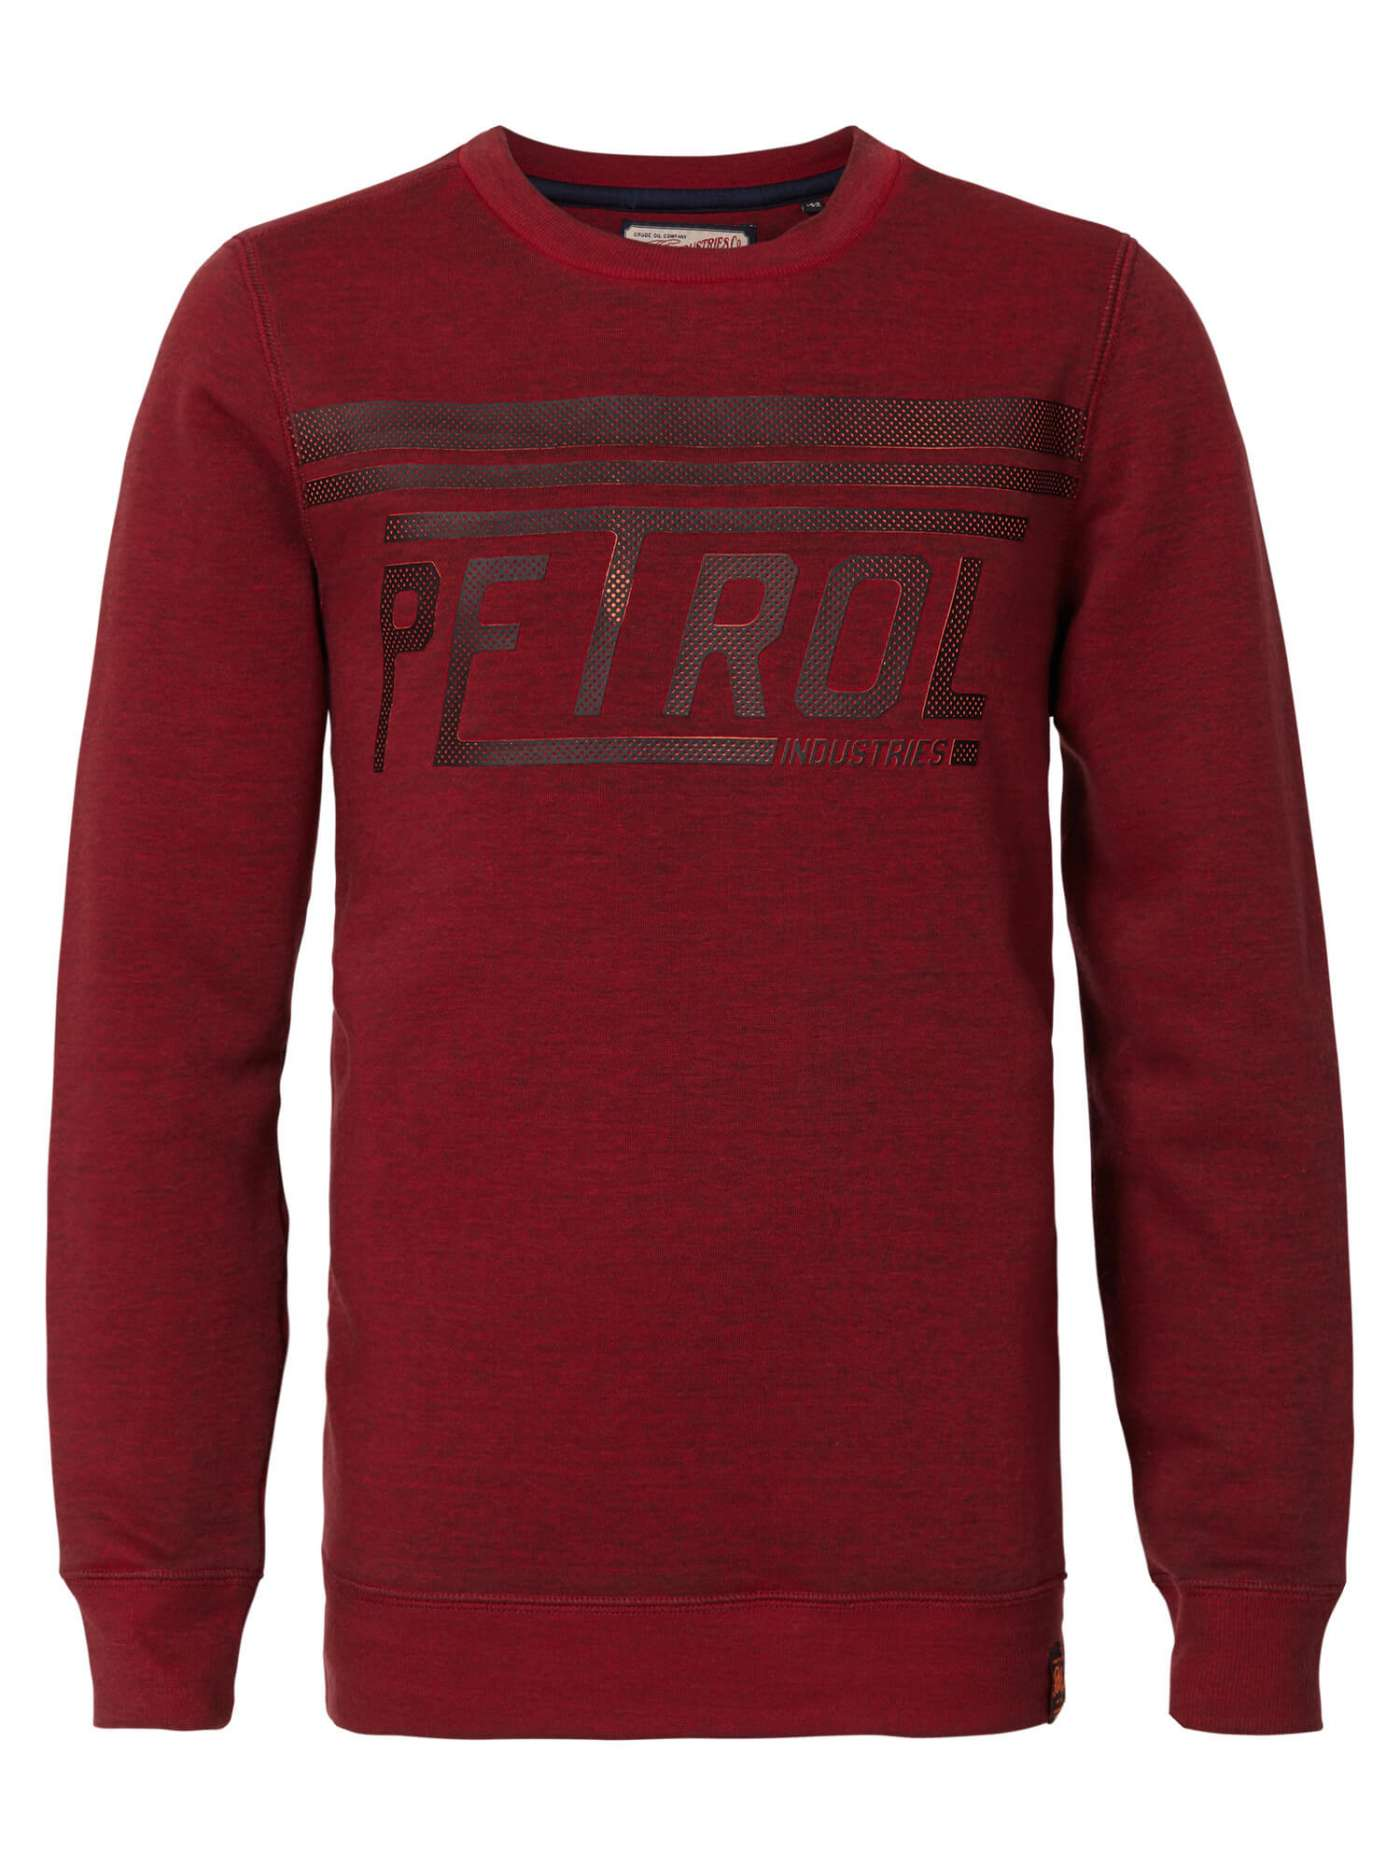 Racing-effect pullover